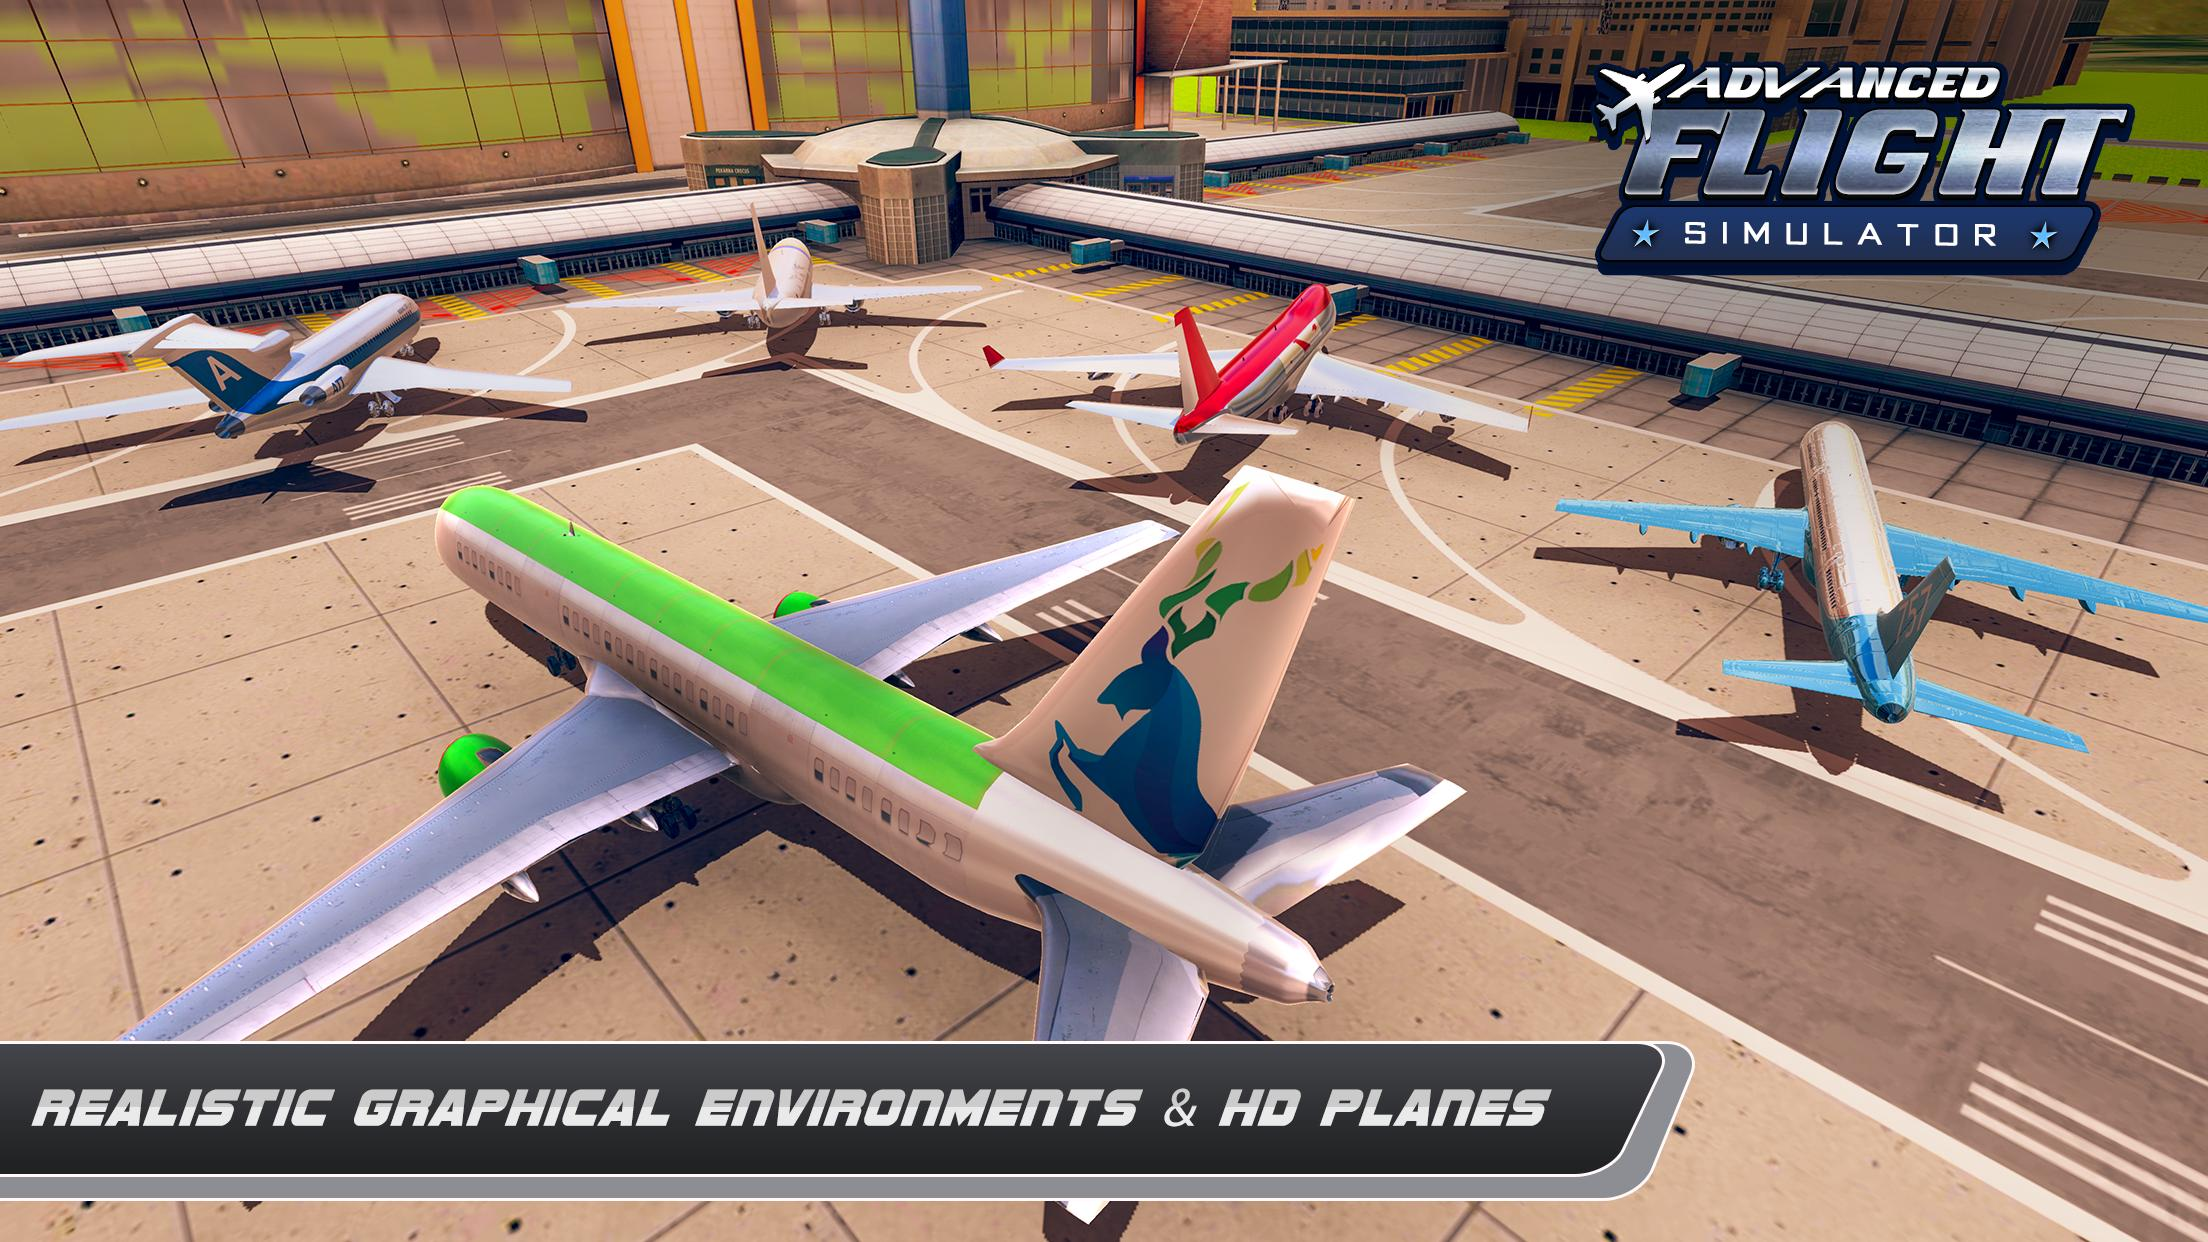 Airplane Real Flight Simulator 2020 Plane Games 5.4 Screenshot 17